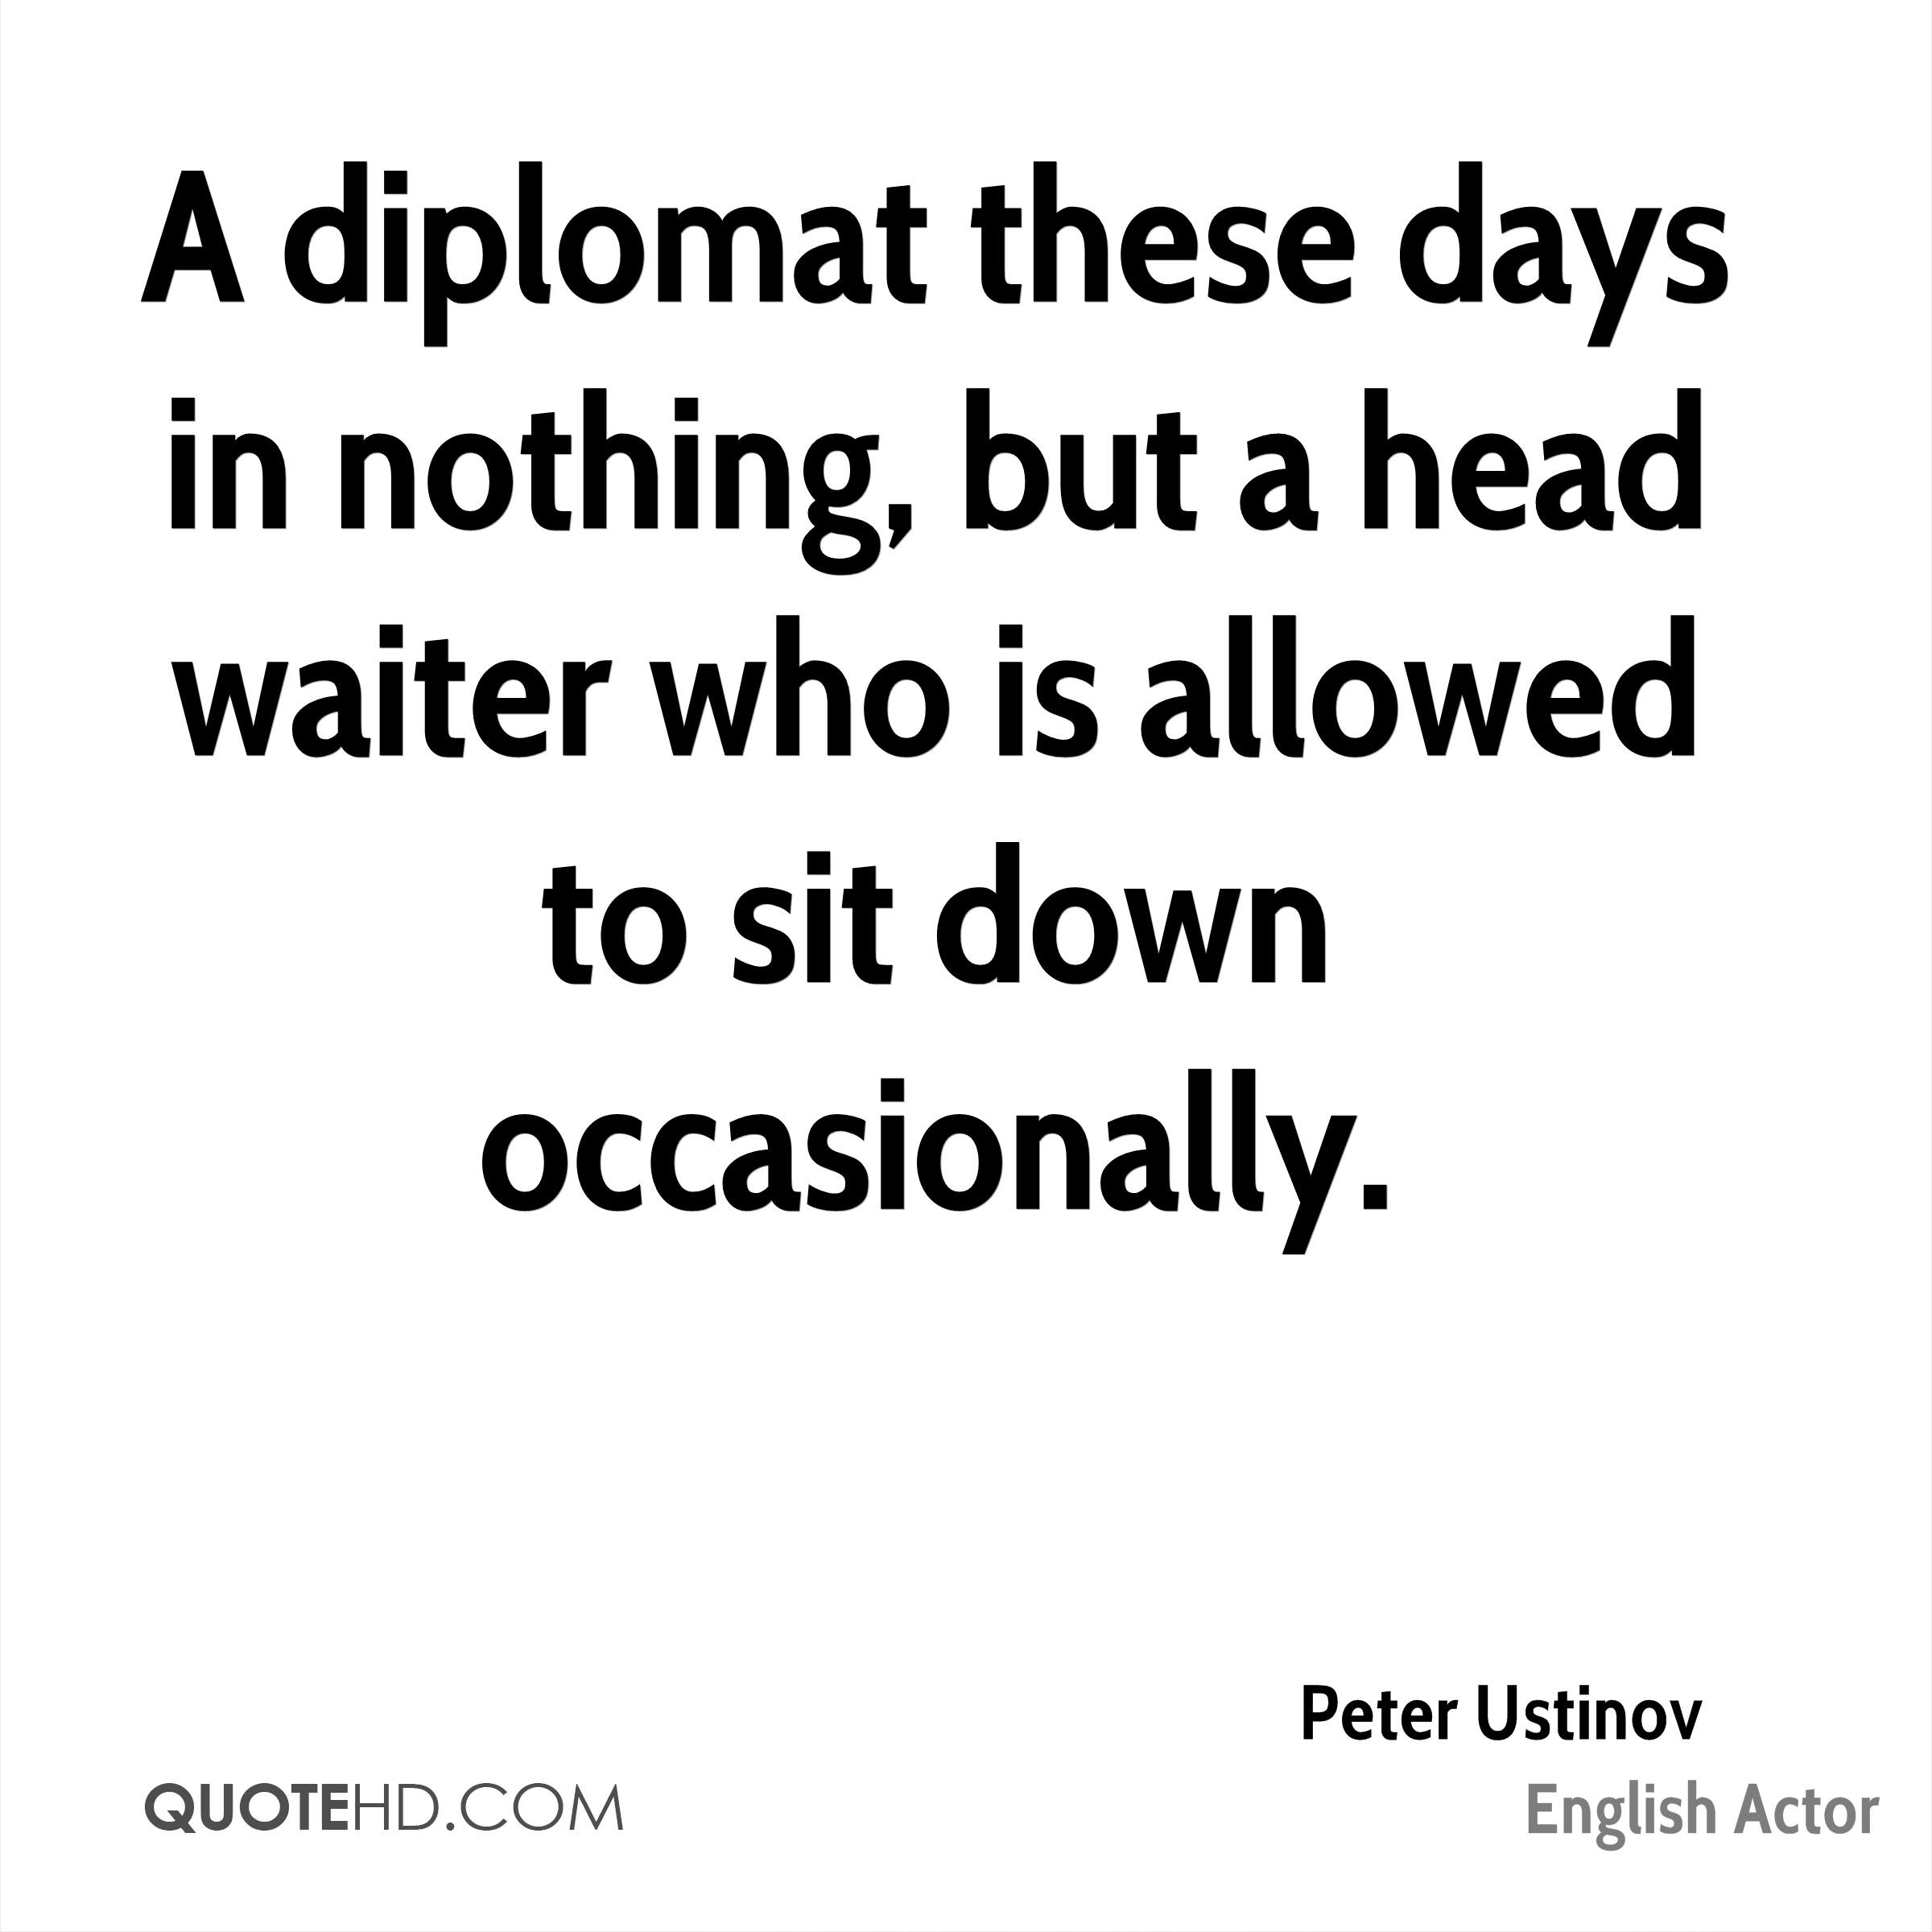 A diplomat these days in nothing, but a head waiter who is allowed to sit down occasionally.